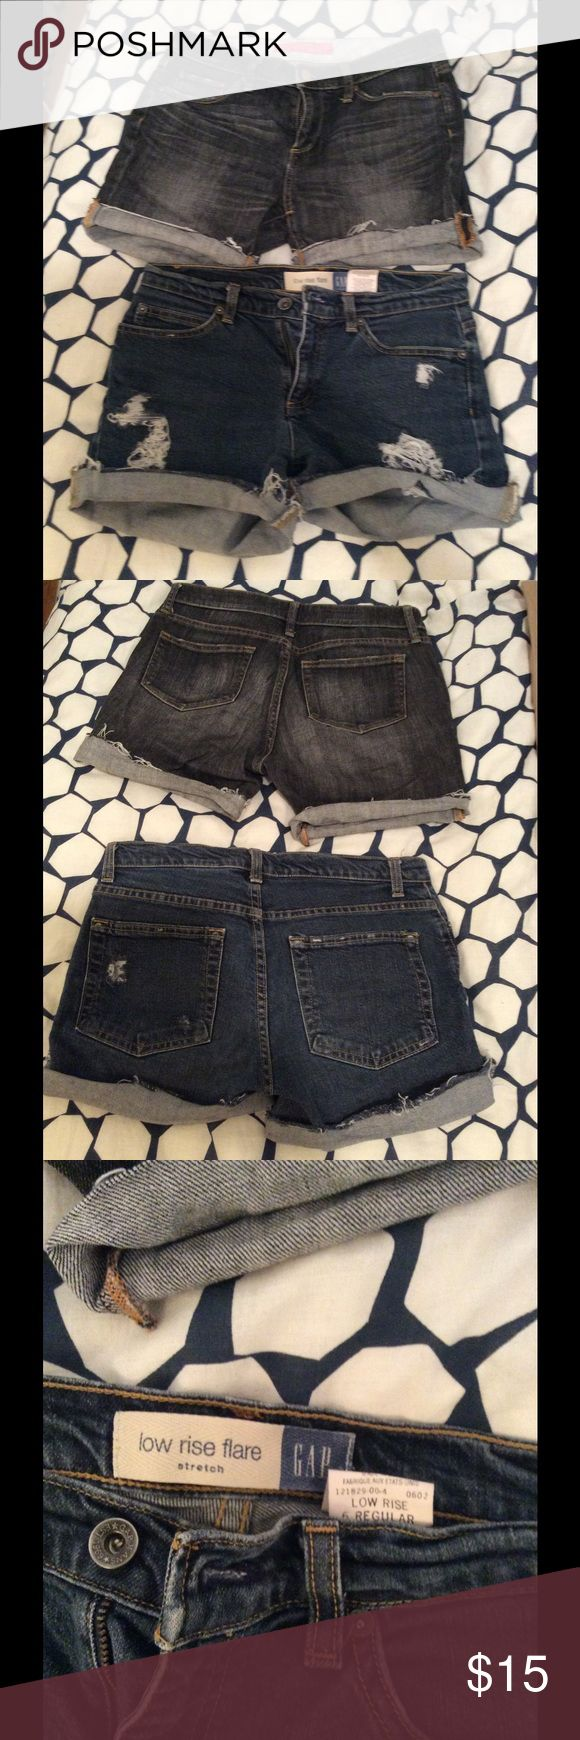 Denim cut off shorts bundle Gap and Uniqlondenim cutoff distressed shorts bundle.  One faded black pair and one blue pair. Get both for one price! Uniqlo Shorts Jean Shorts